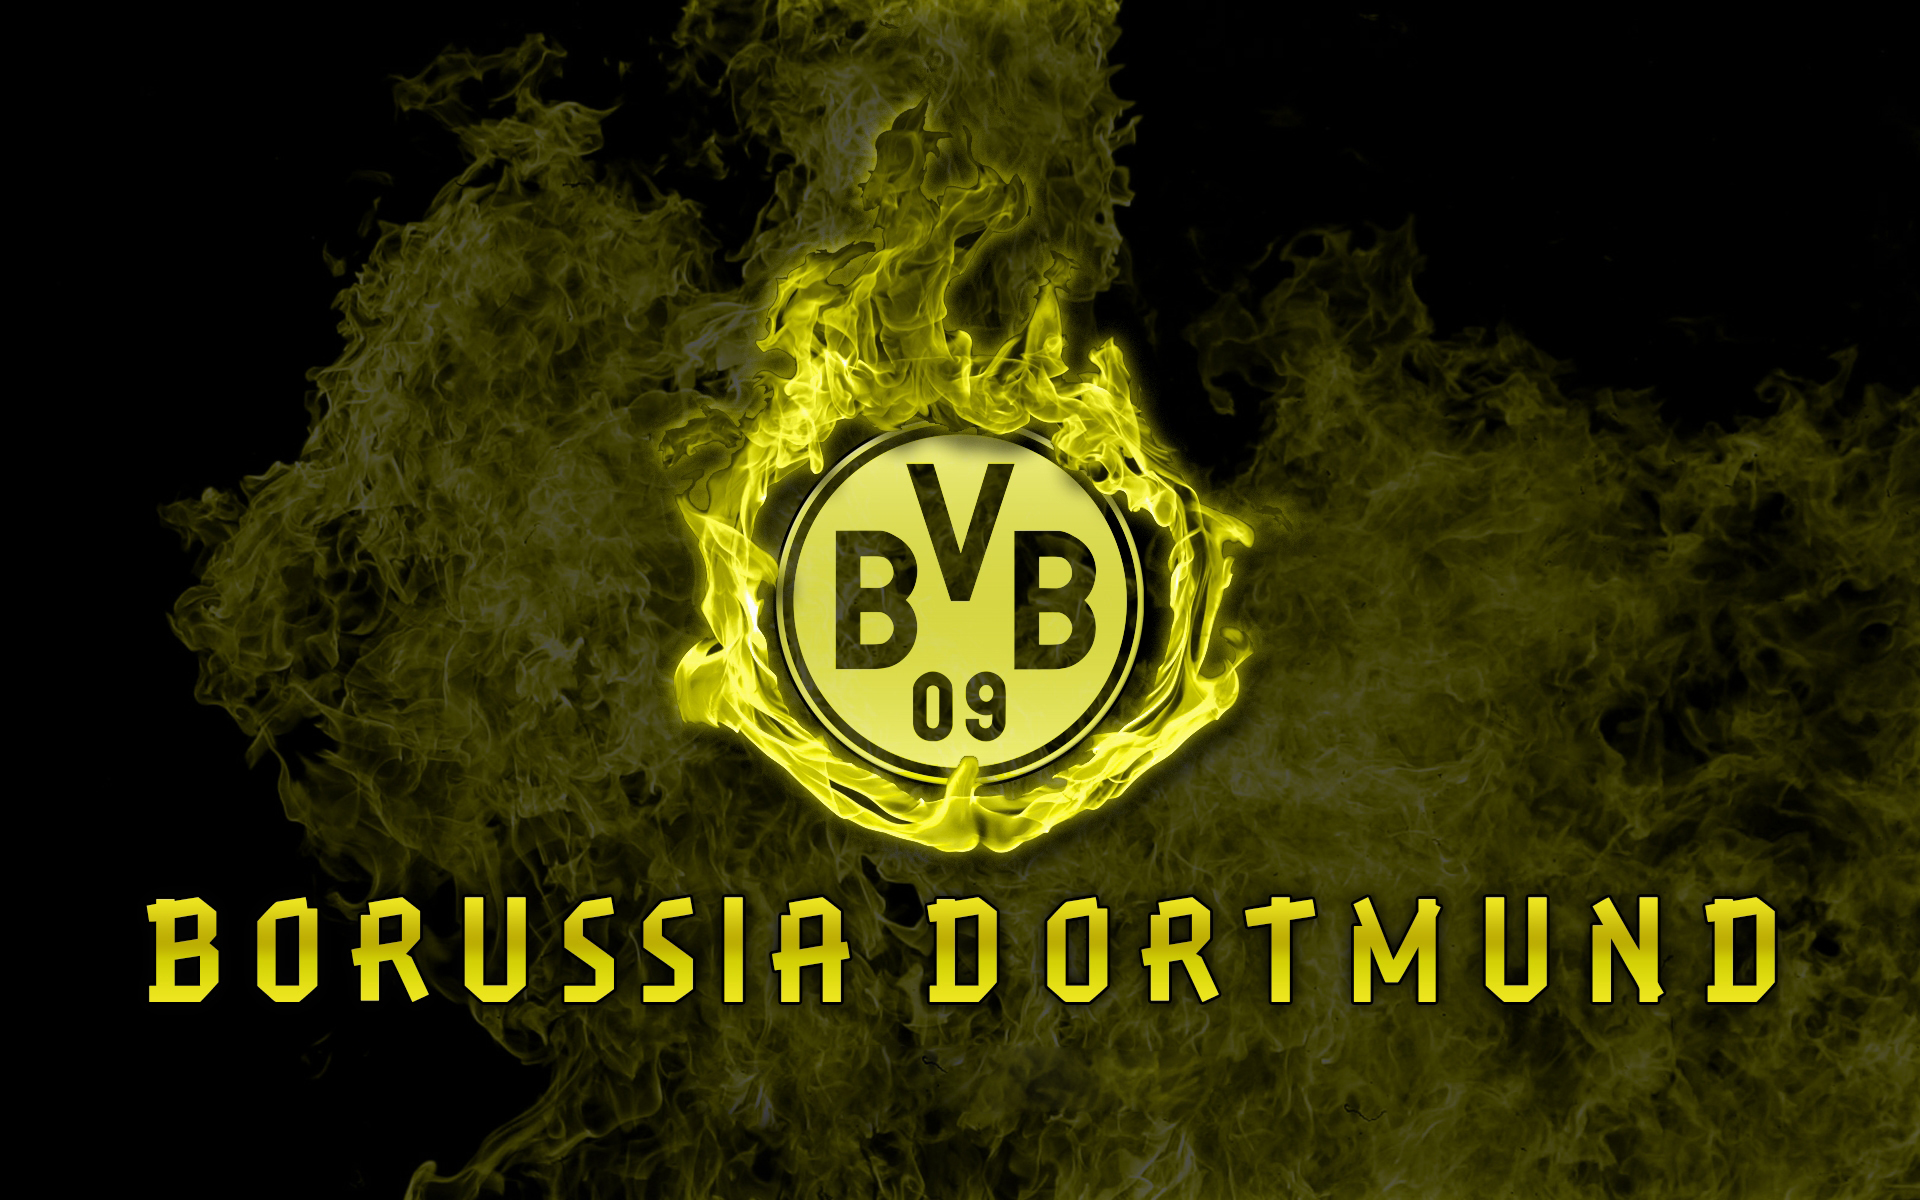 Borussia Dortmund High Quality Background on Wallpapers Vista